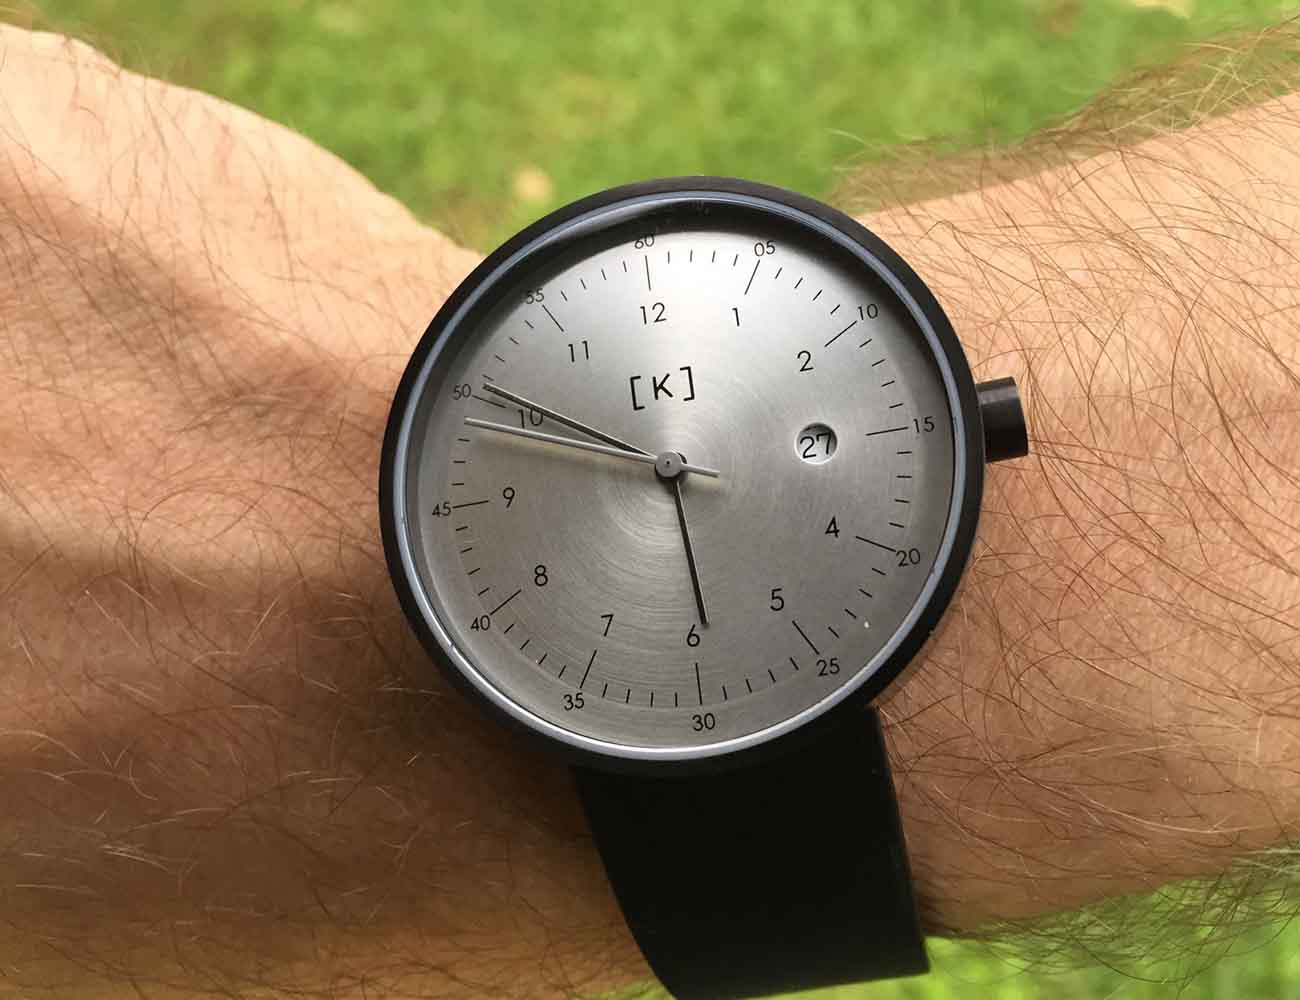 iKi A Series Minimalist Watches